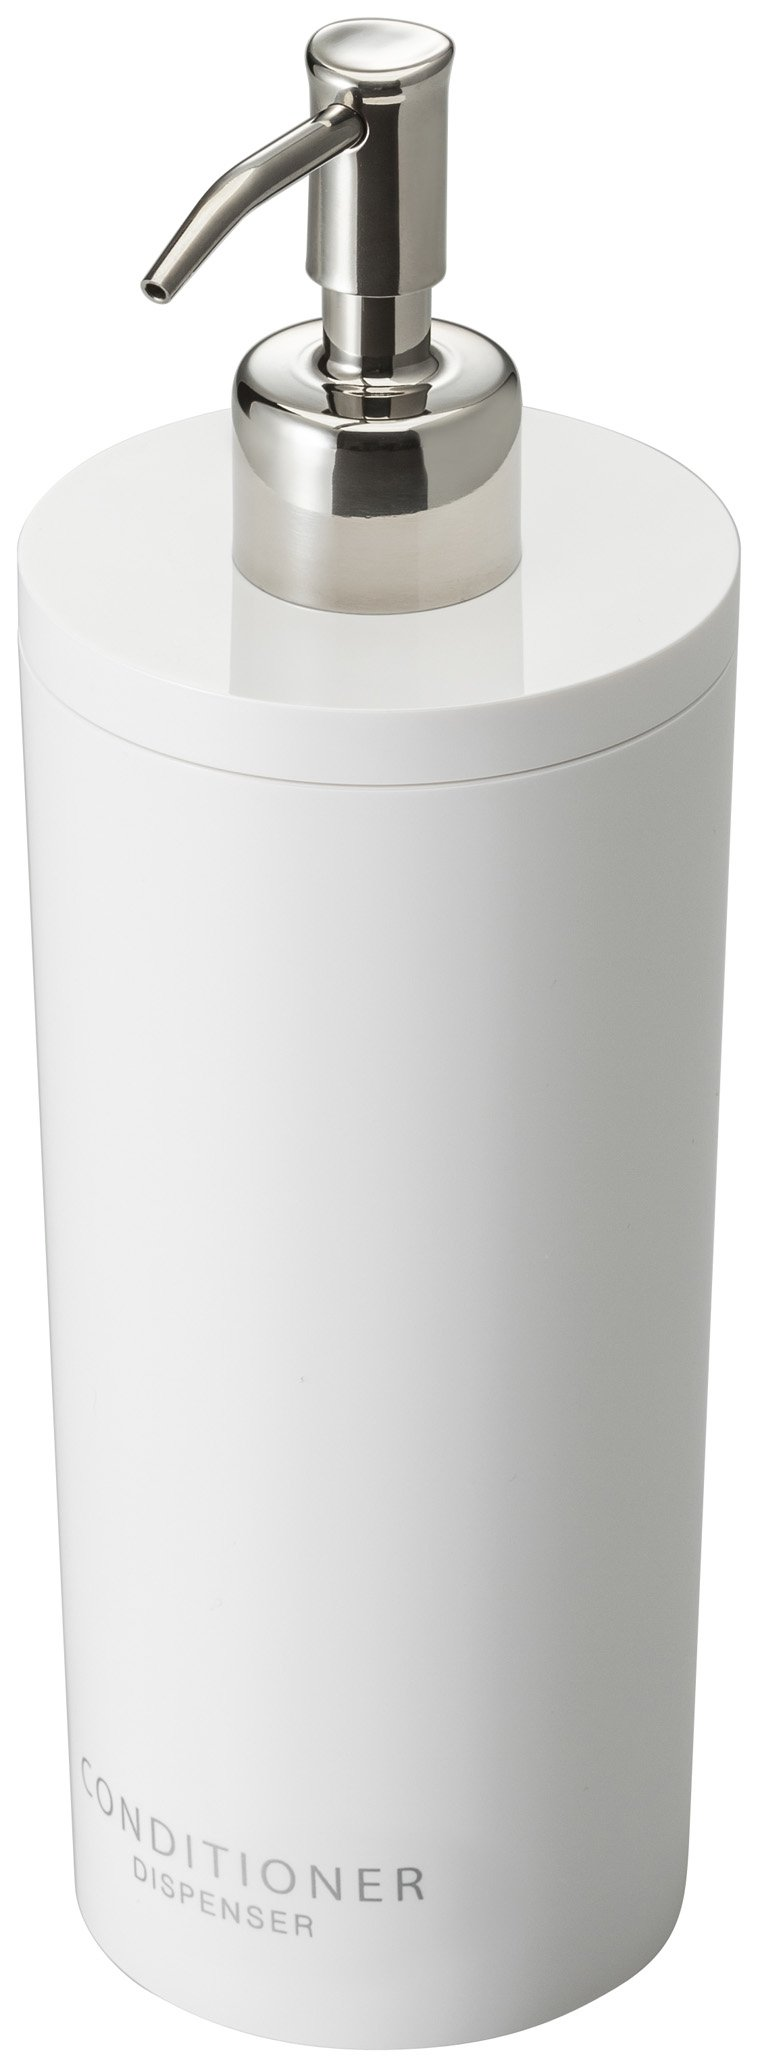 YAMAZAKI home Tower Classic Dispenser, Conditioner, White